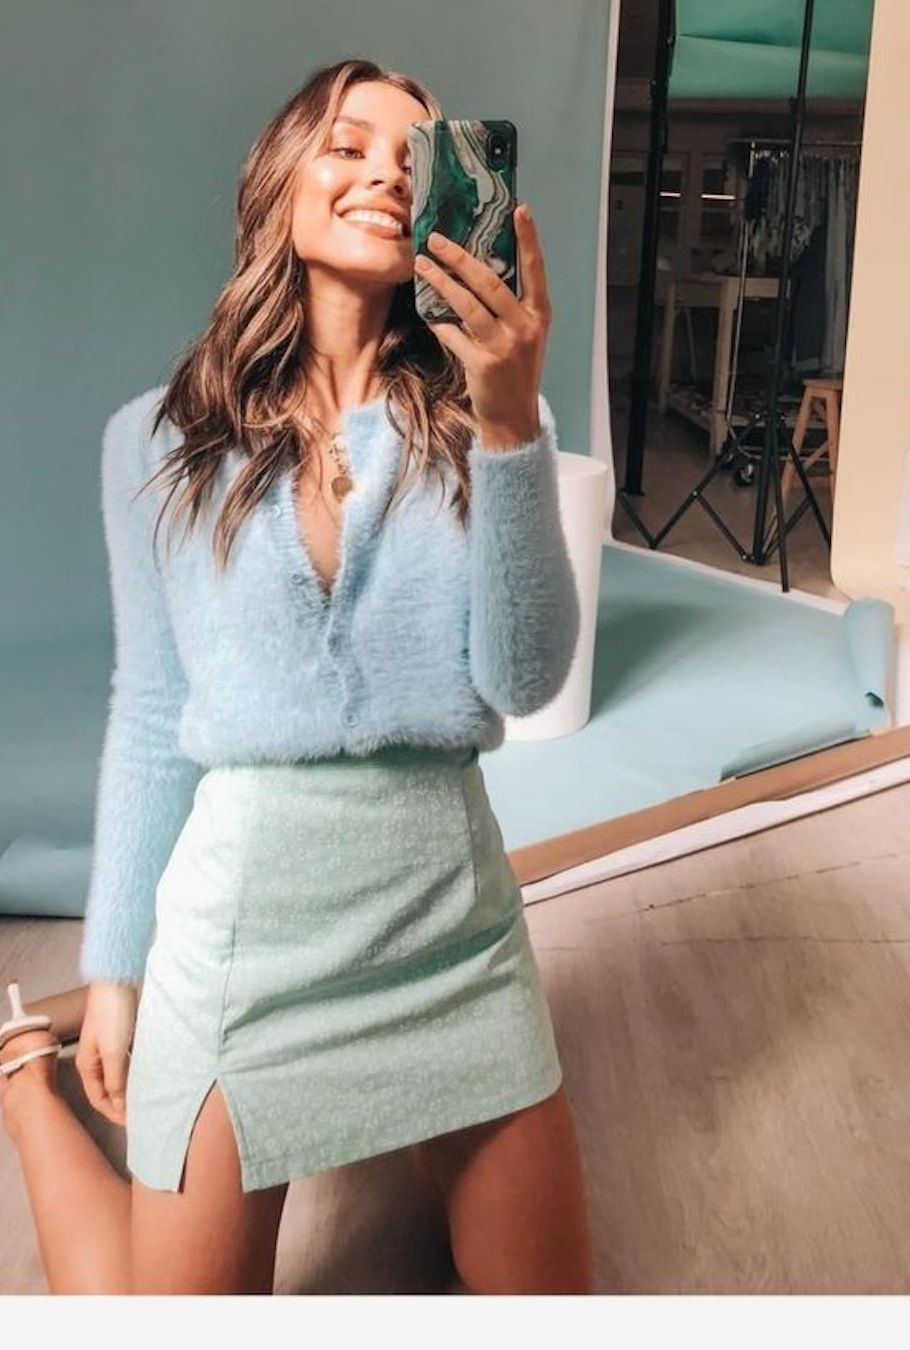 20 City Outfit Ideas for Summer   City outfits, Fashion, Aesthetic ...